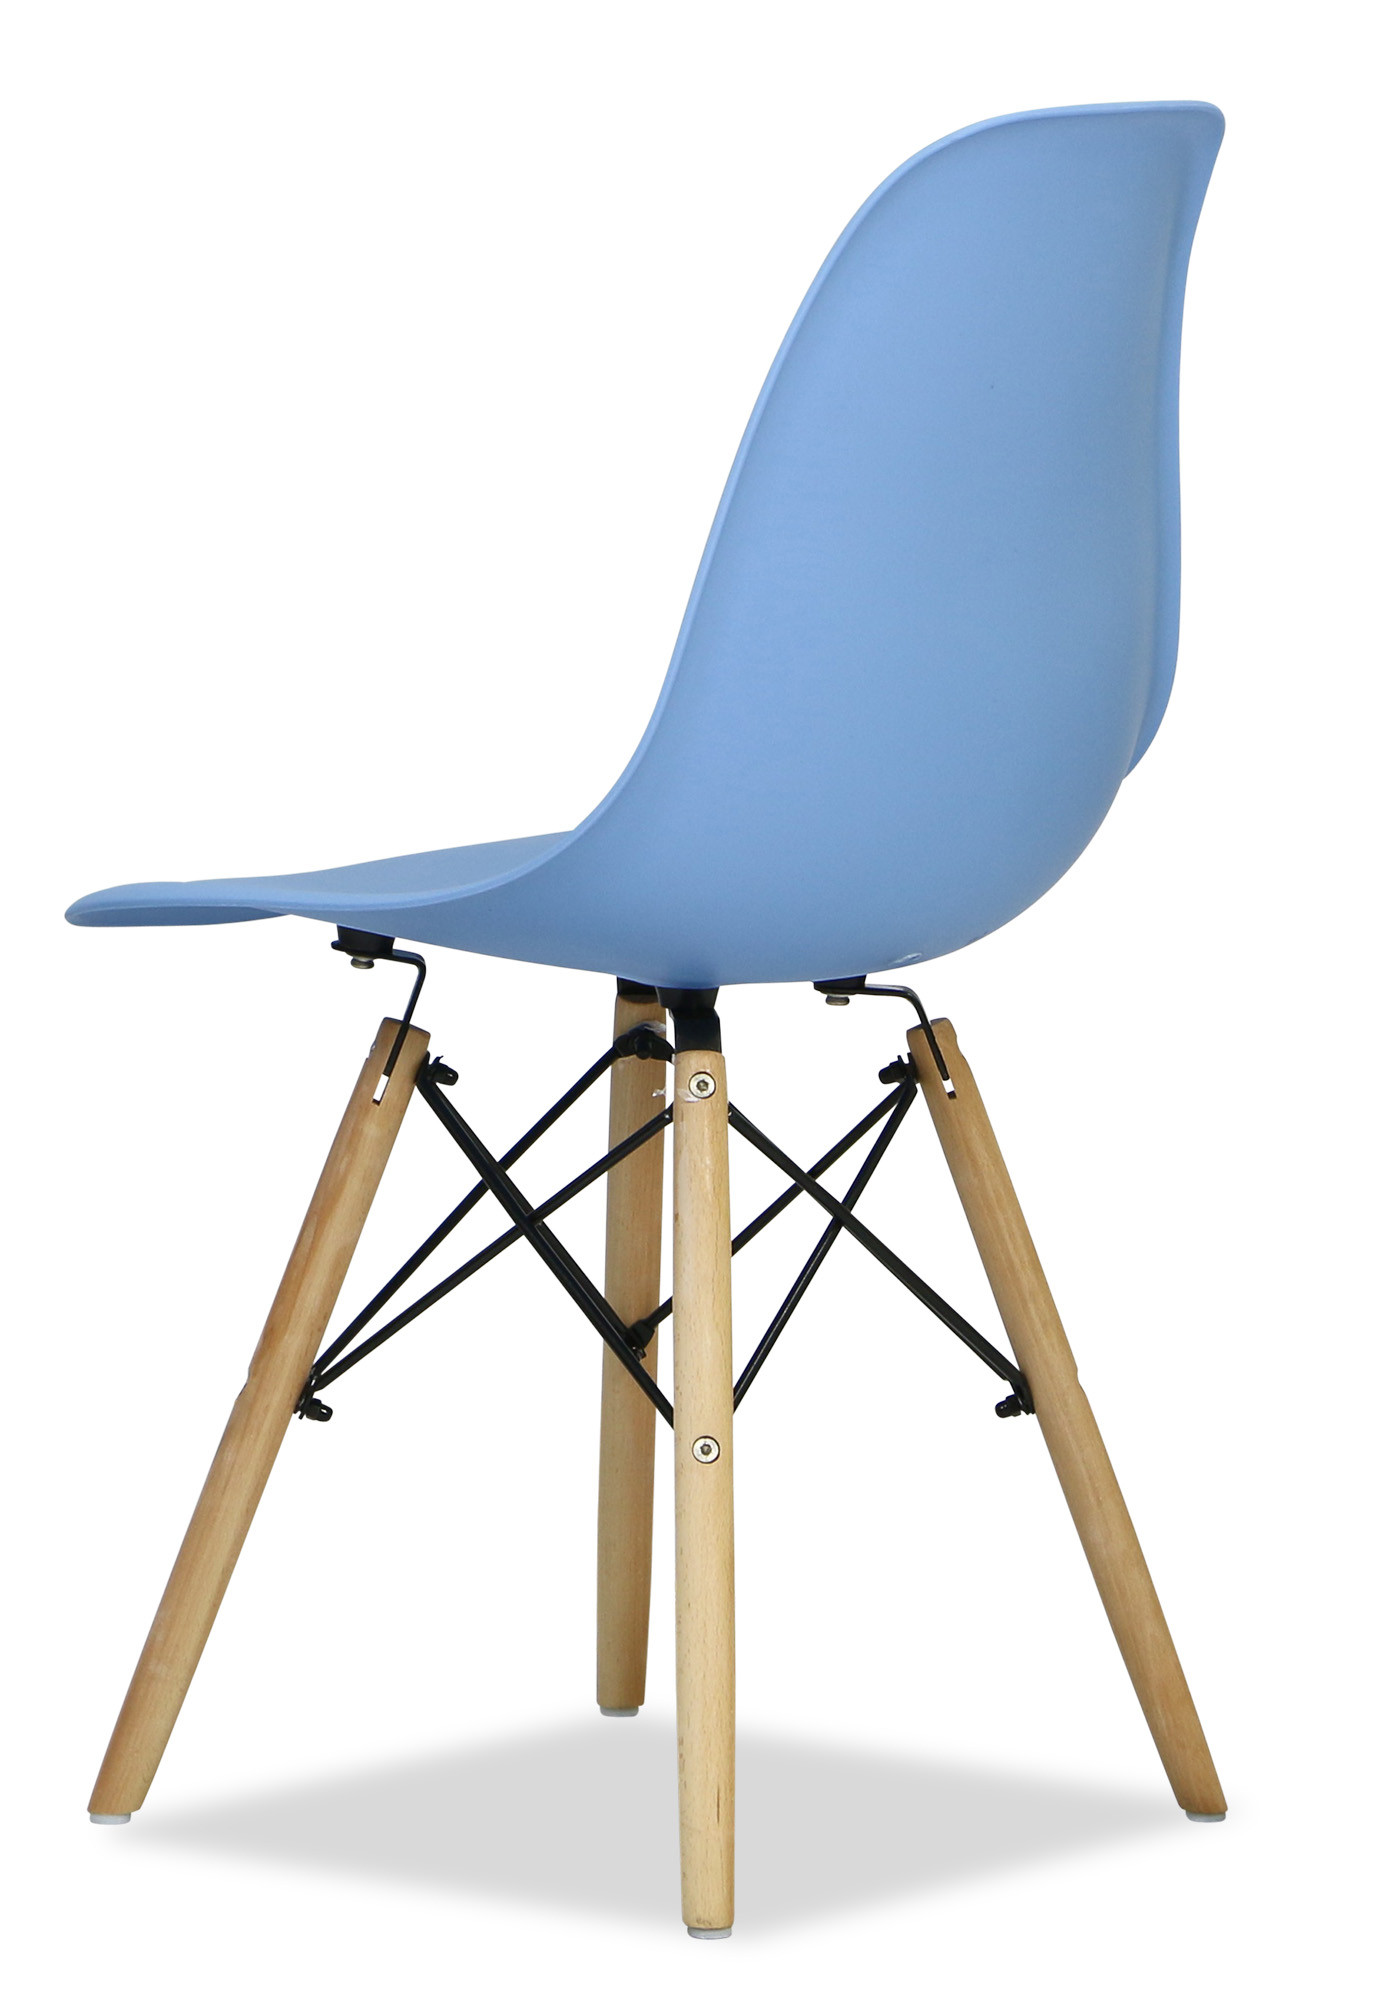 Eames baby blue replica designer chair dining chairs for Imitation designer chairs